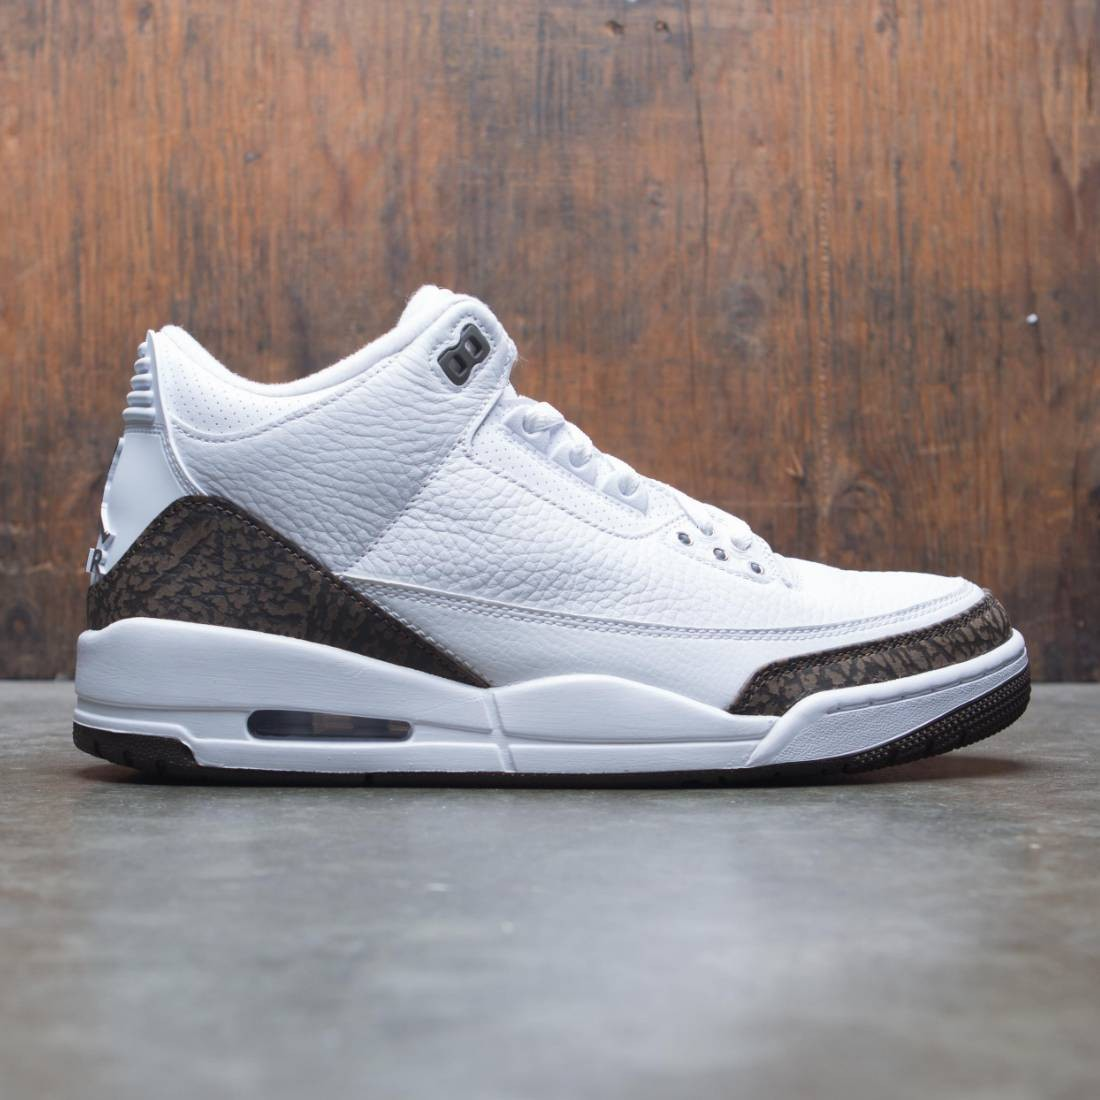 the best attitude 641ea 78093 jordan men air jordan 3 retro white dark mocha chrome